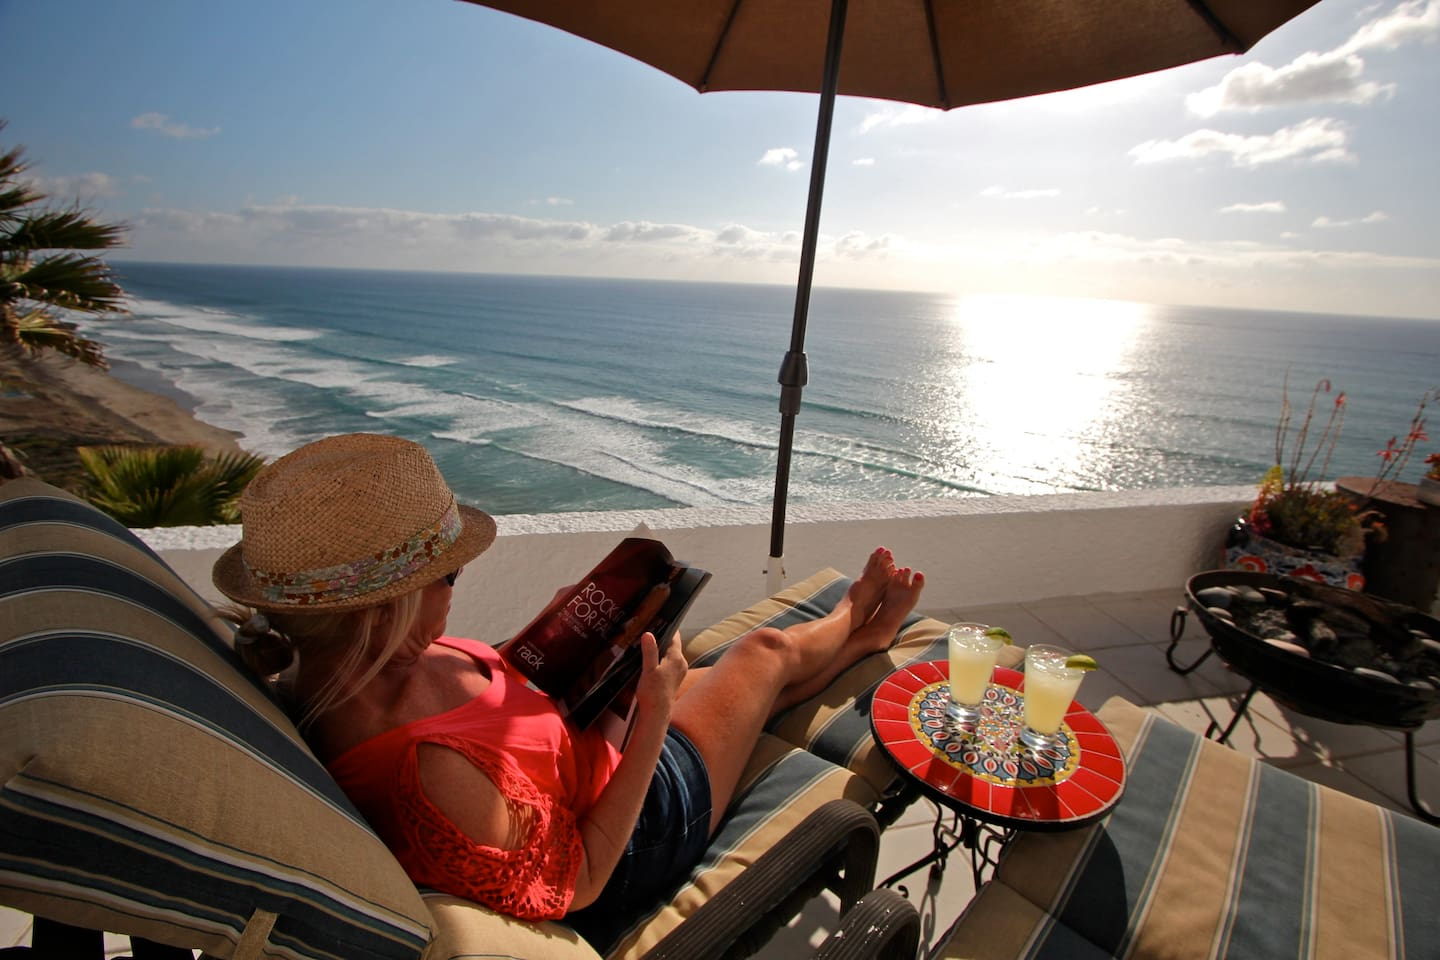 Afternoon relaxing with beautiful coastal views is what our place is all about.